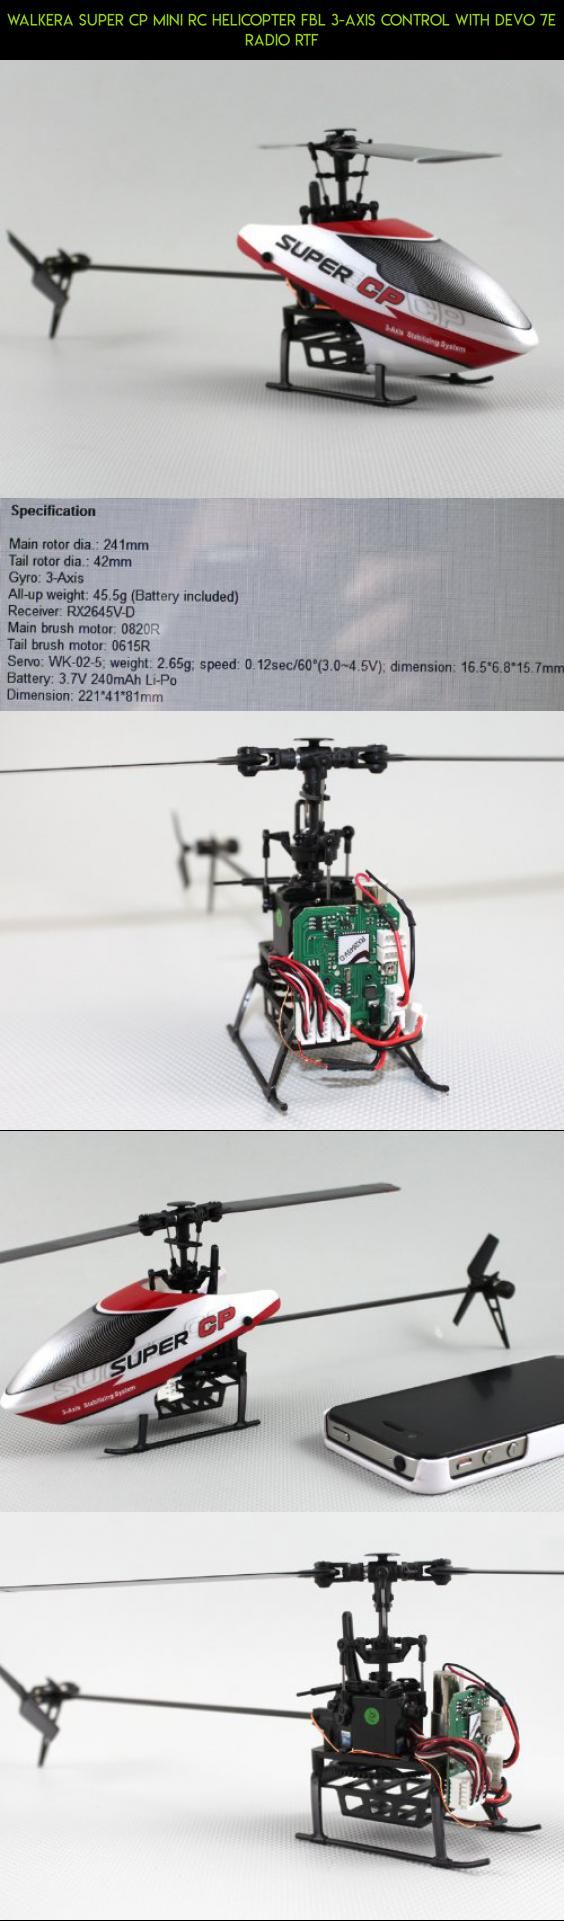 Walkera Super CP mini Rc Helicopter FBL 3-axis Control with DEVO 7E radio RTF #gadgets #walkera #kit #technology #fpv #racing #7e #products #parts #plans #drone #tech #camera #shopping